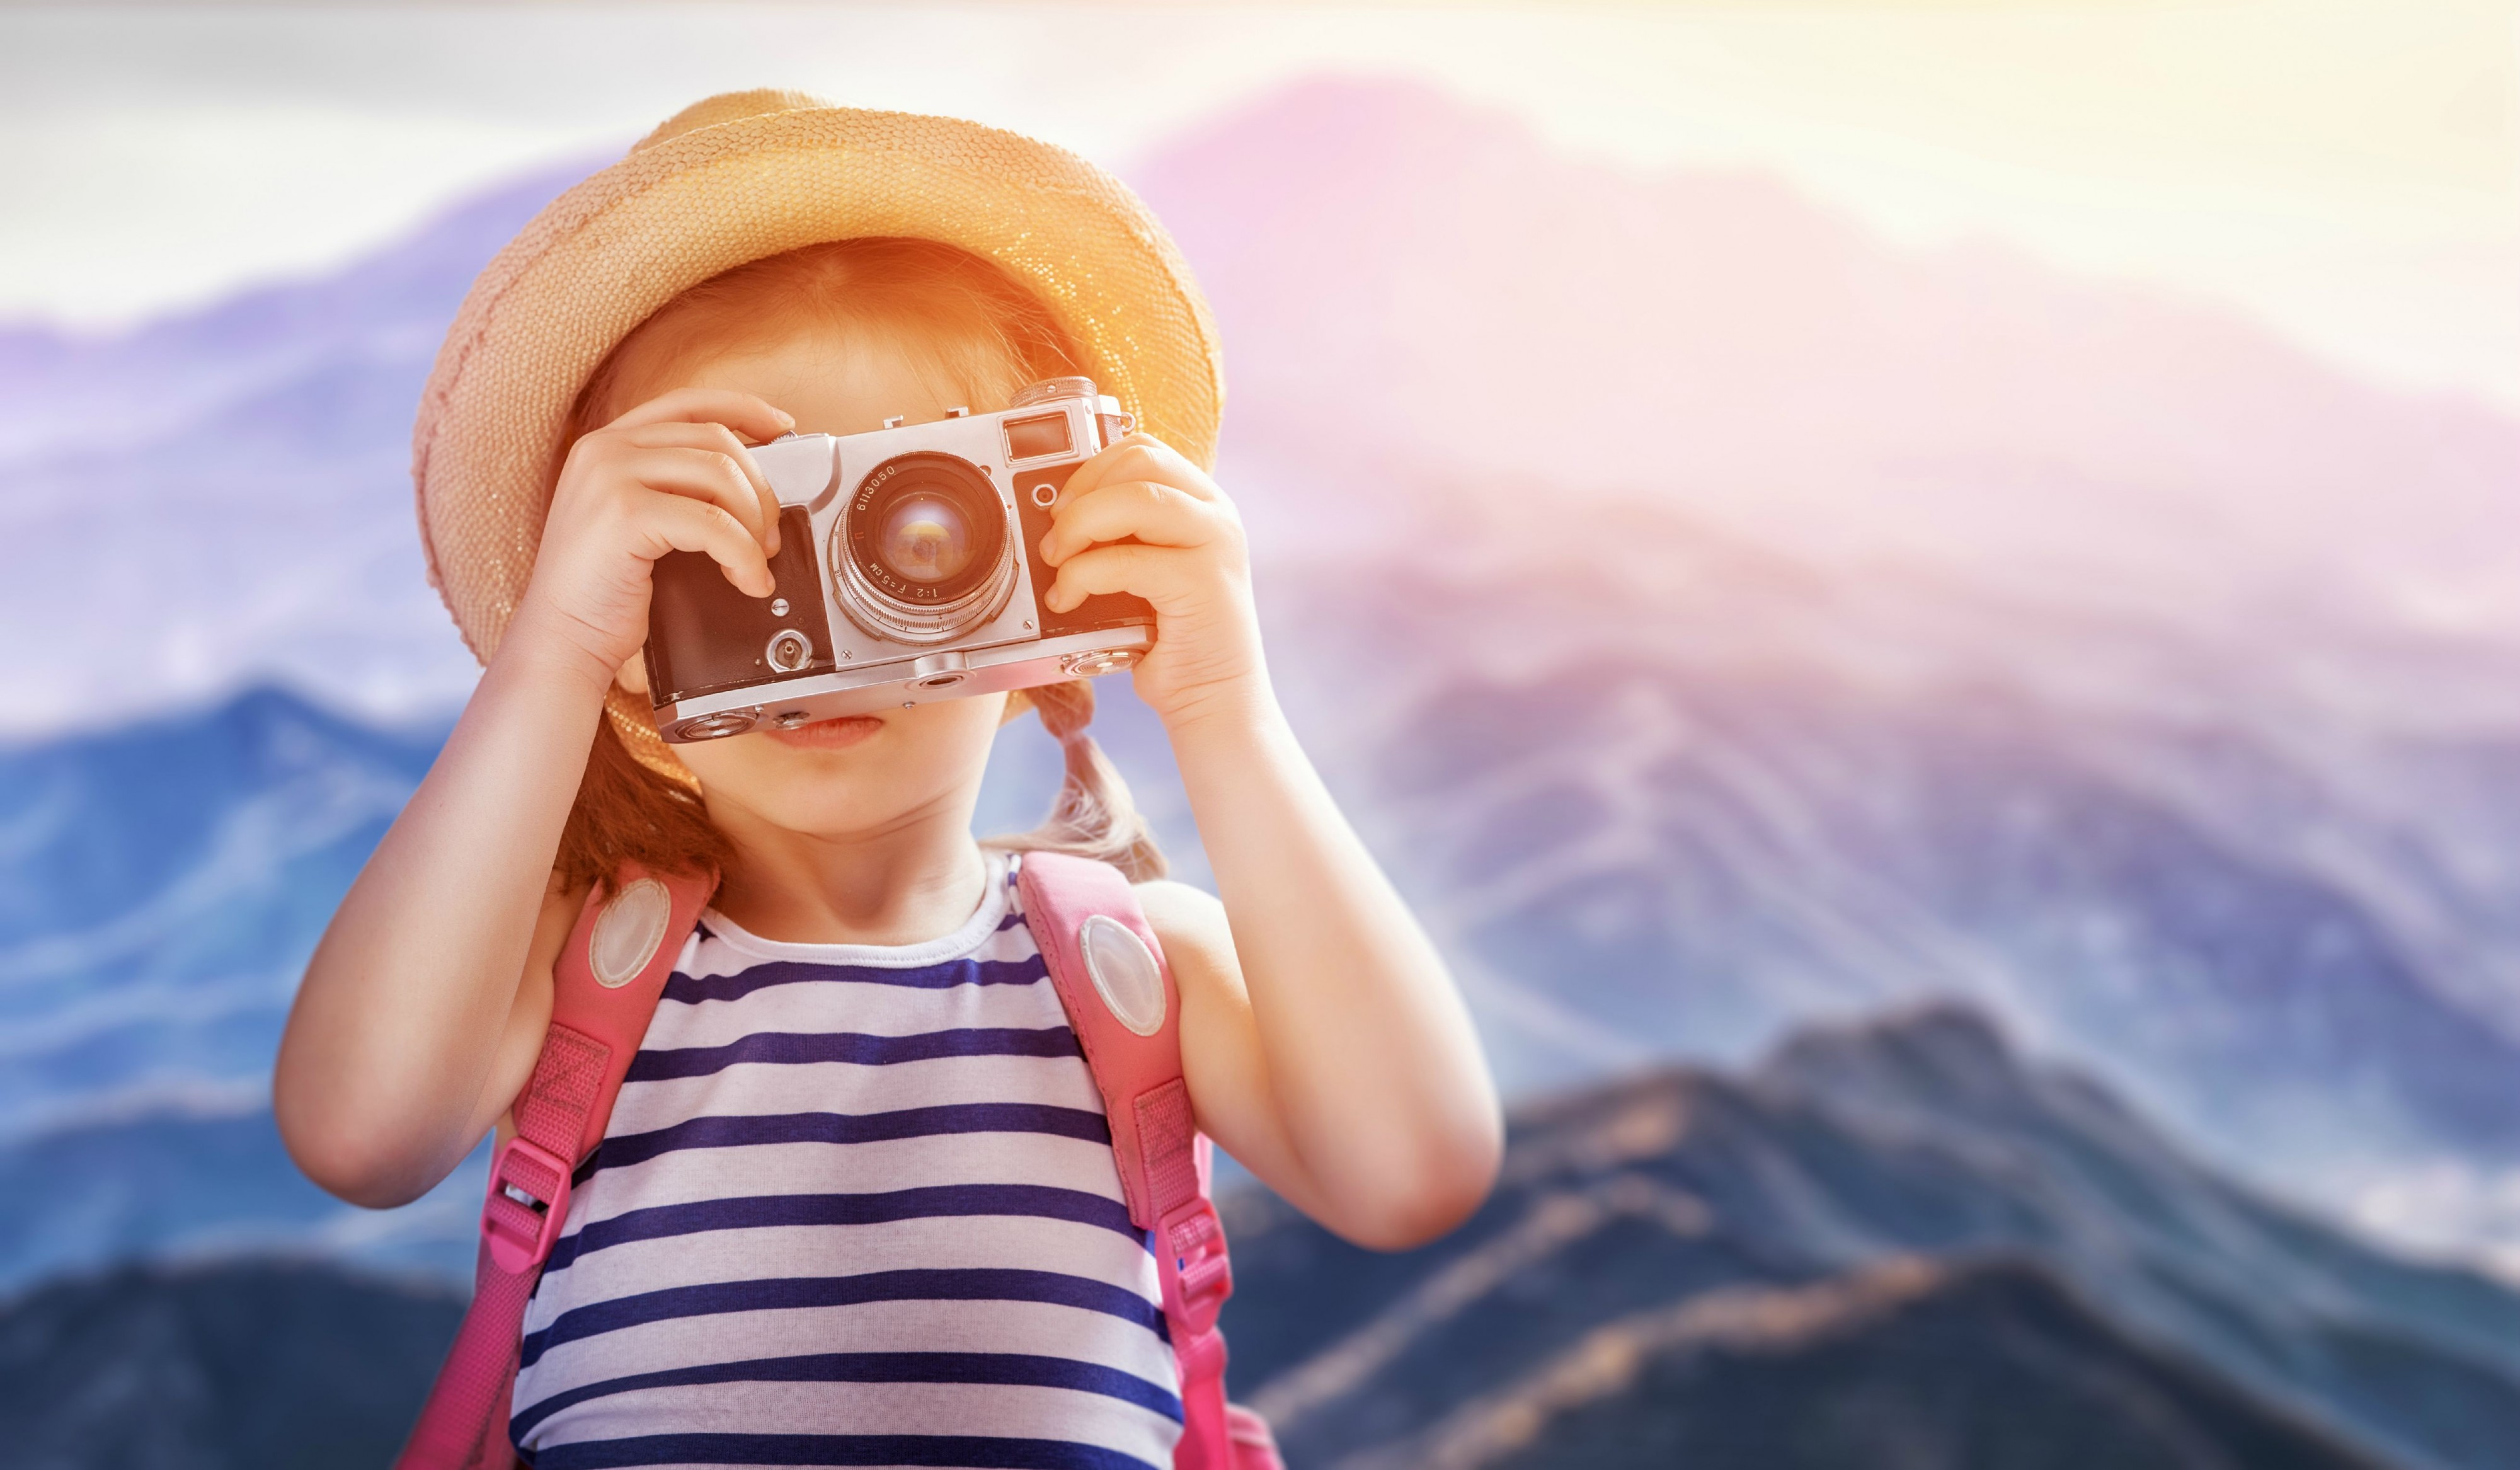 this is an image of a young girl with a camera